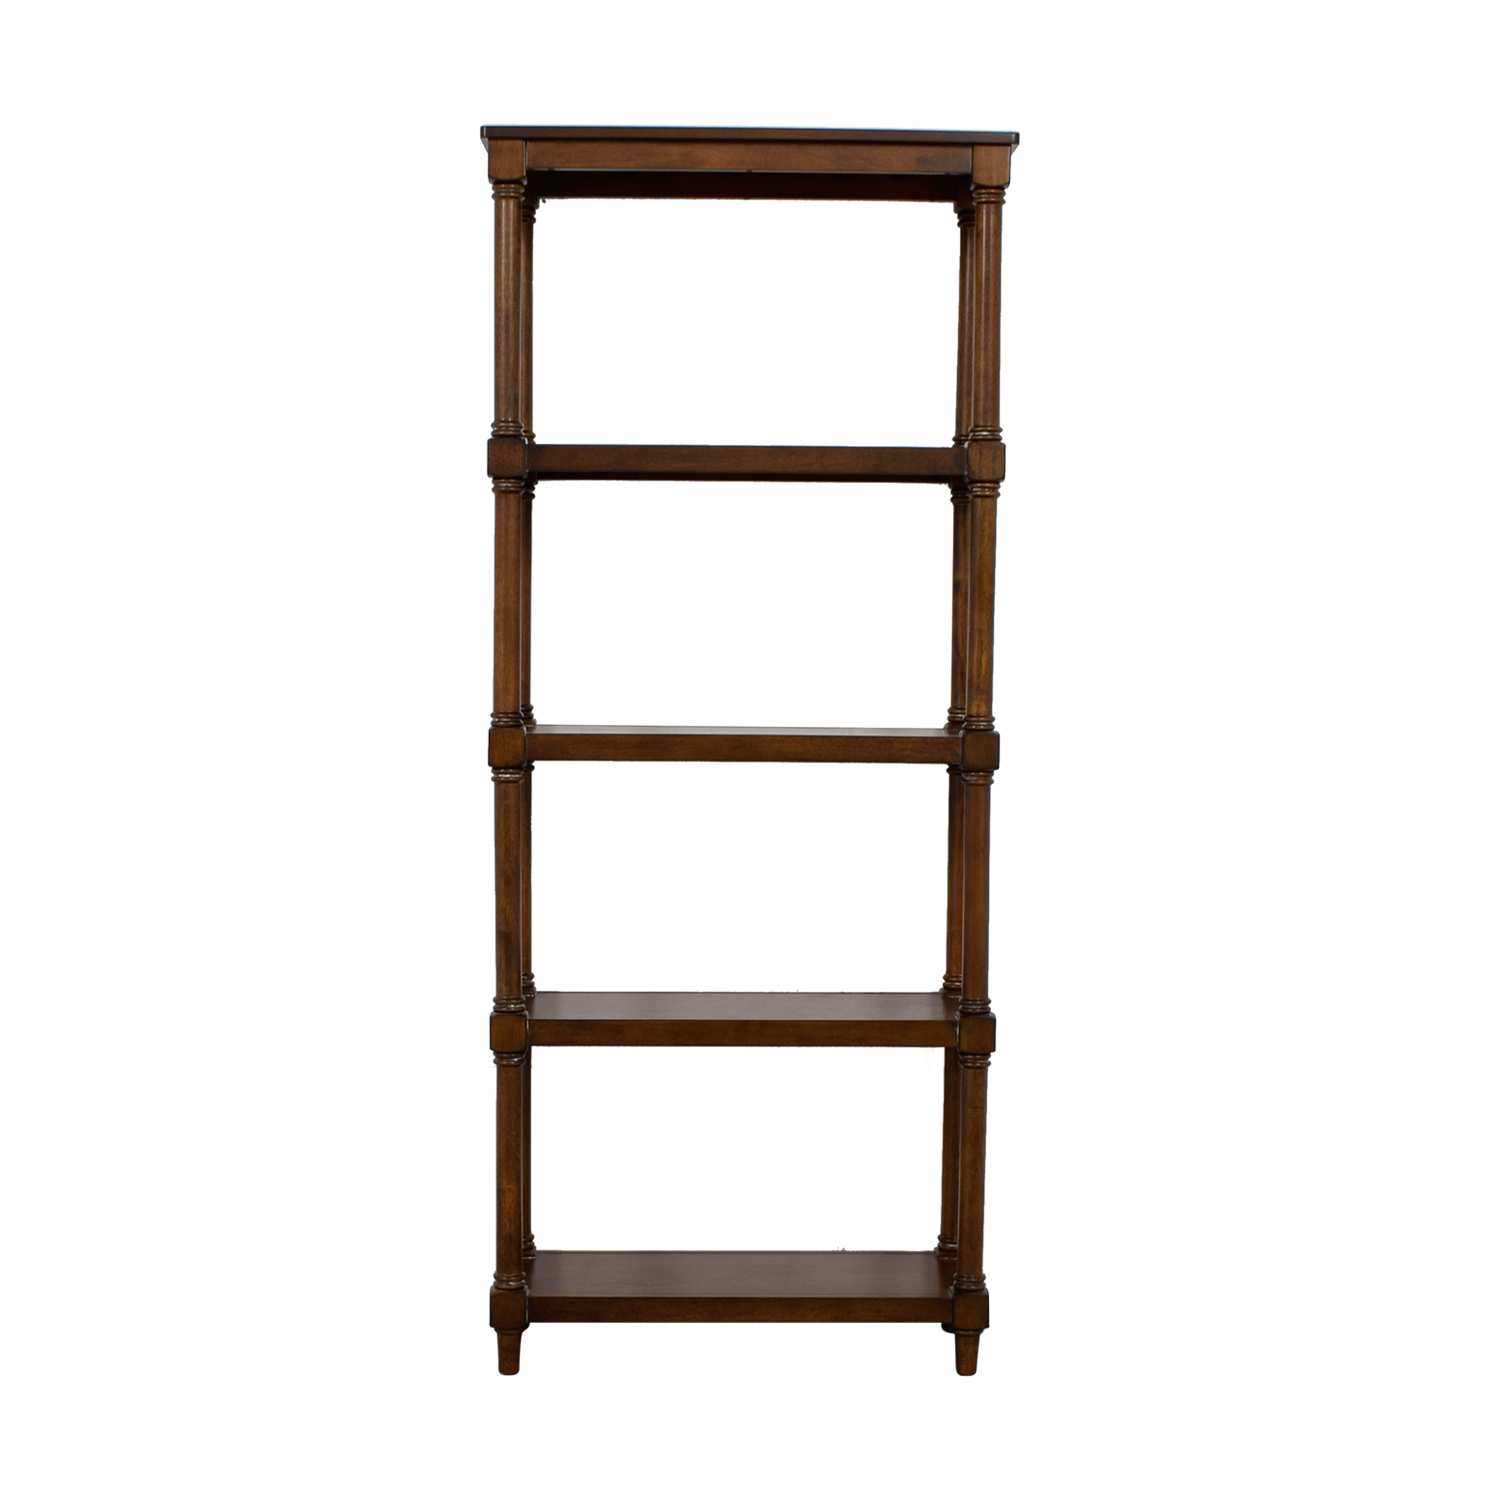 Raymour & Flanigan Wood Bookshelf / Storage